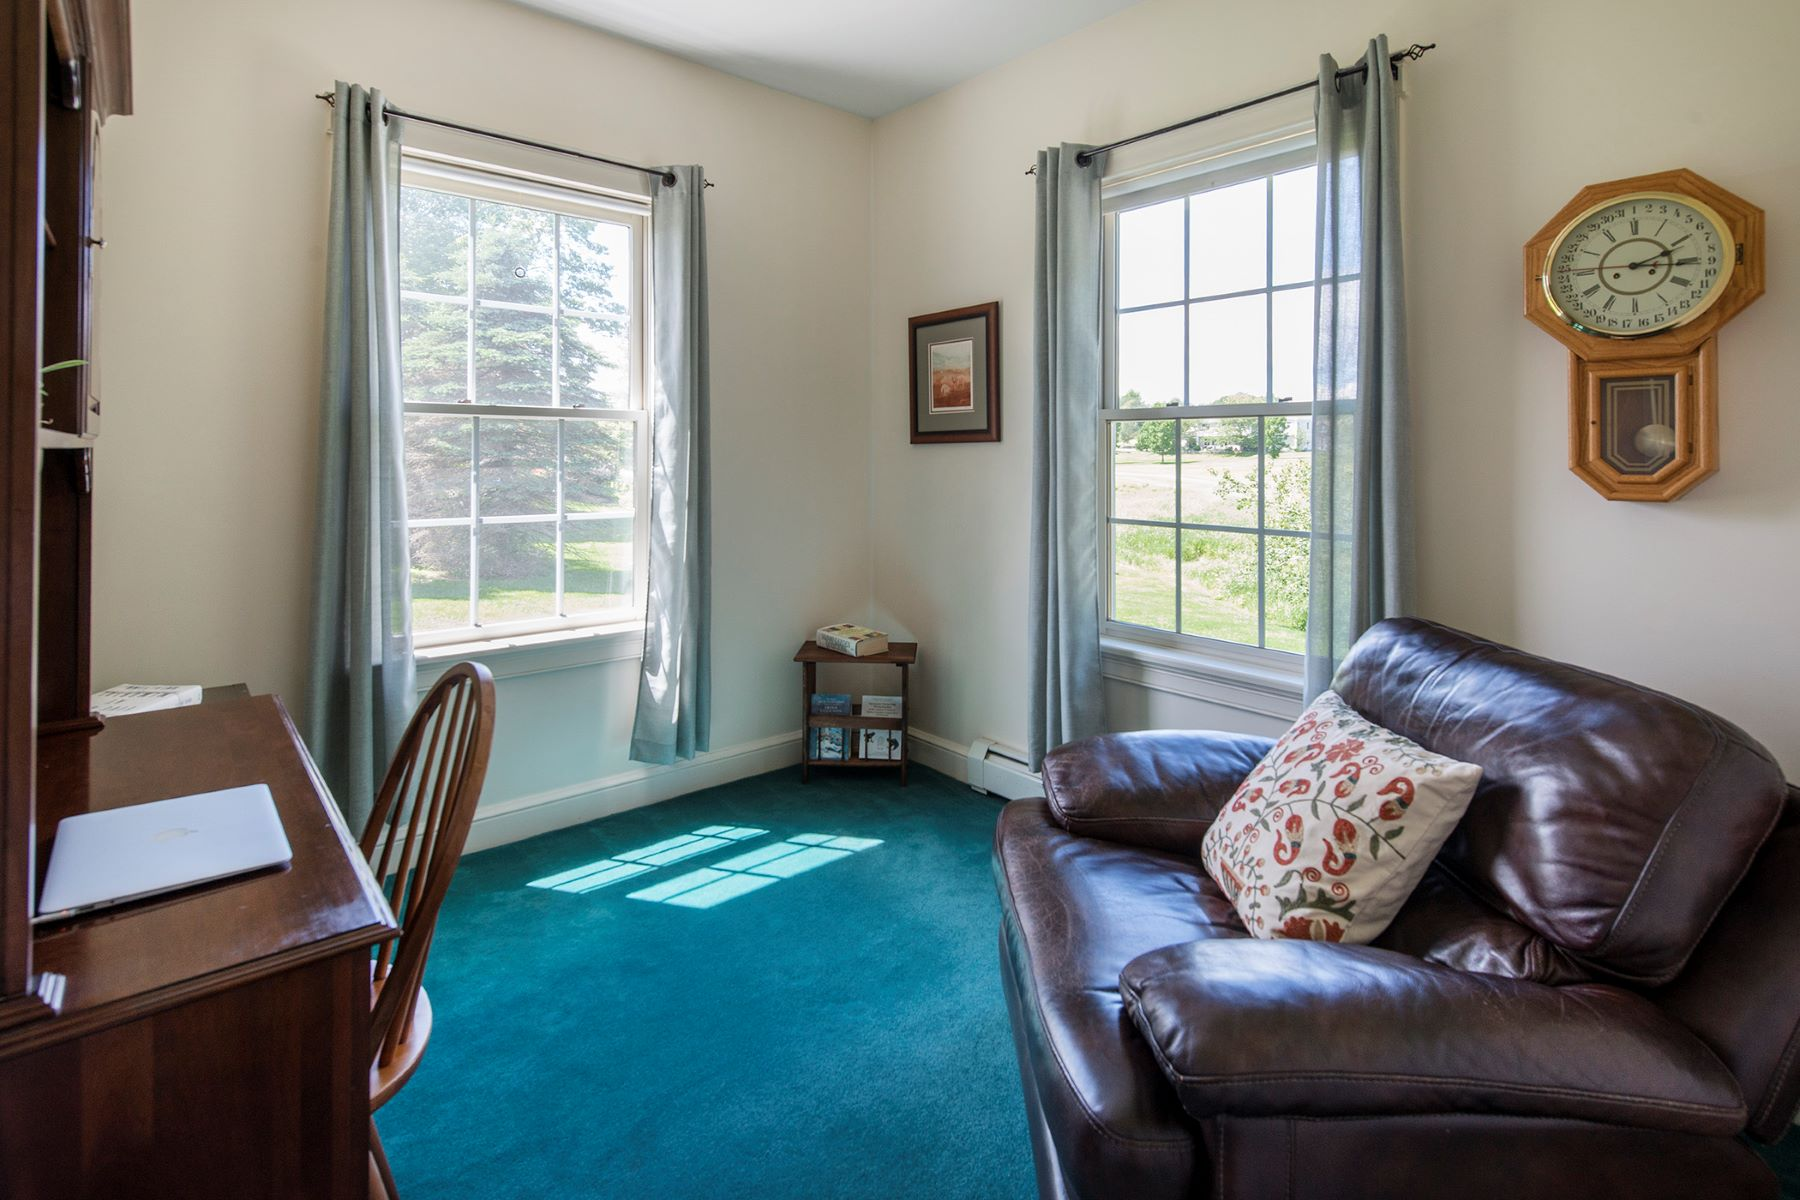 Additional photo for property listing at 7 Muirfield Road 7 Muirfield Road Cumberland, Maine 04021 United States